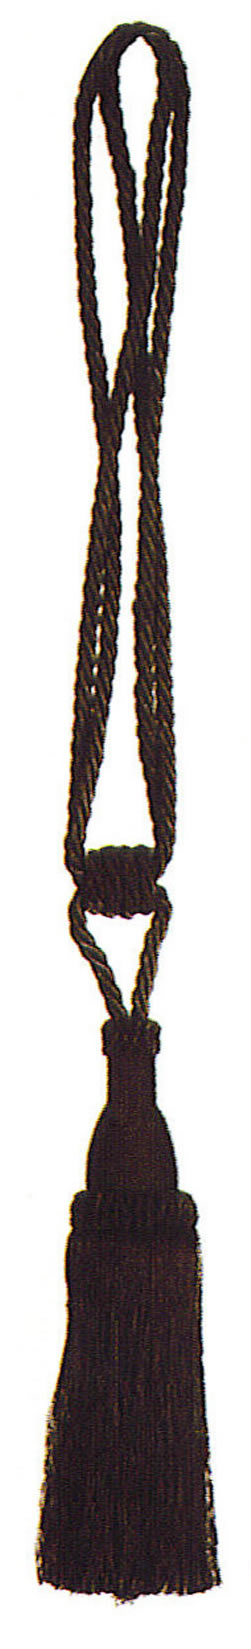 Tassels (1 pair) - Black, 7inx3in